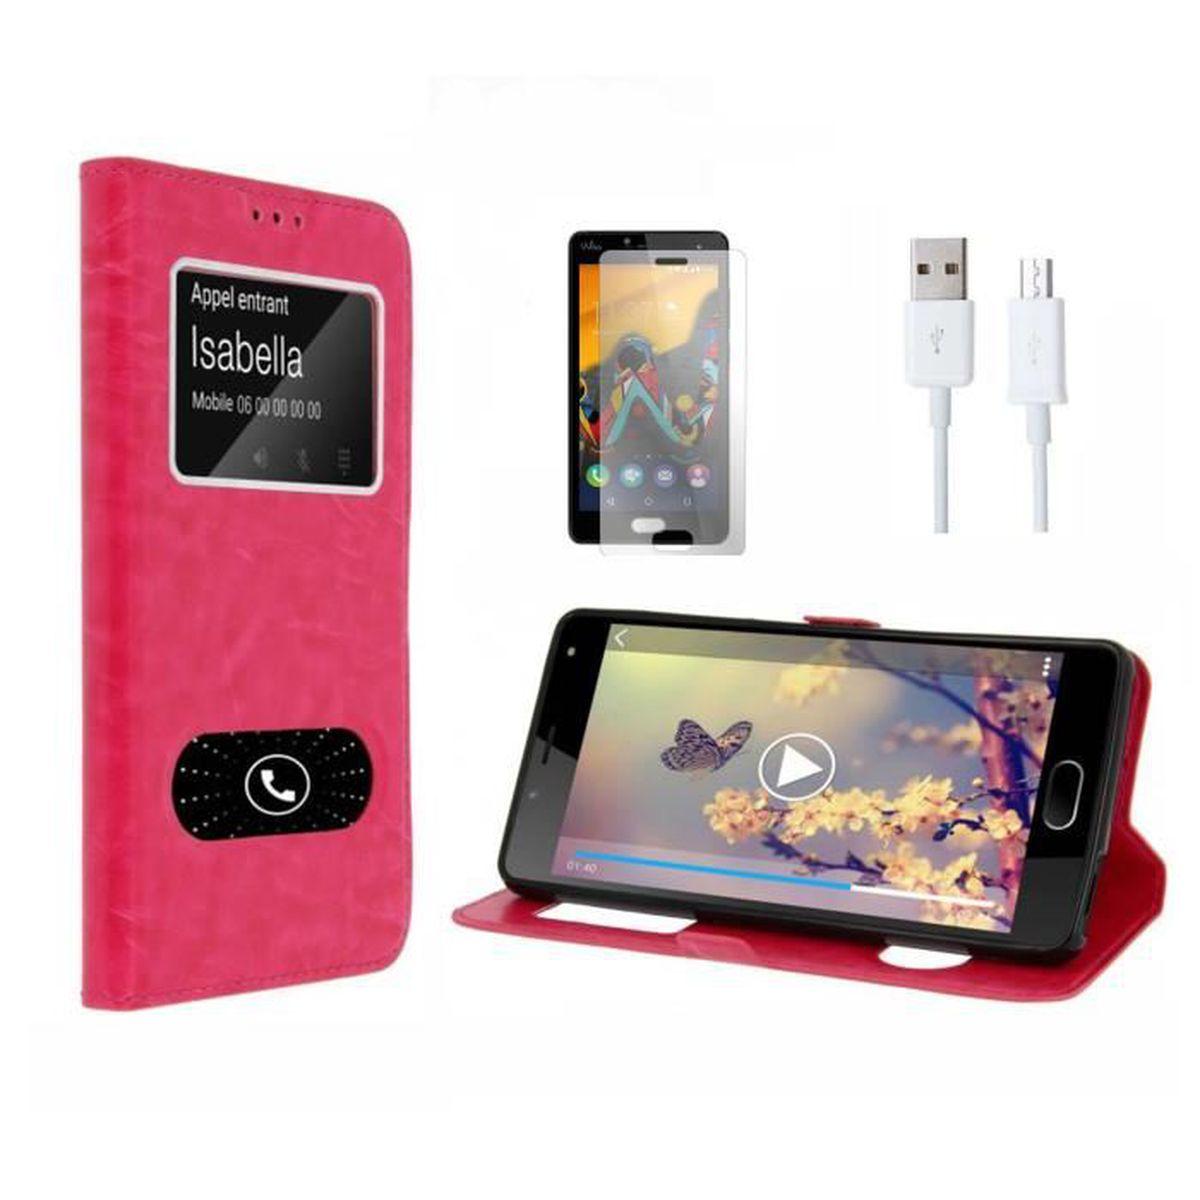 Housse wiko lenny 3 rose achat housse tui pas cher for Wiko lenny 3 housse